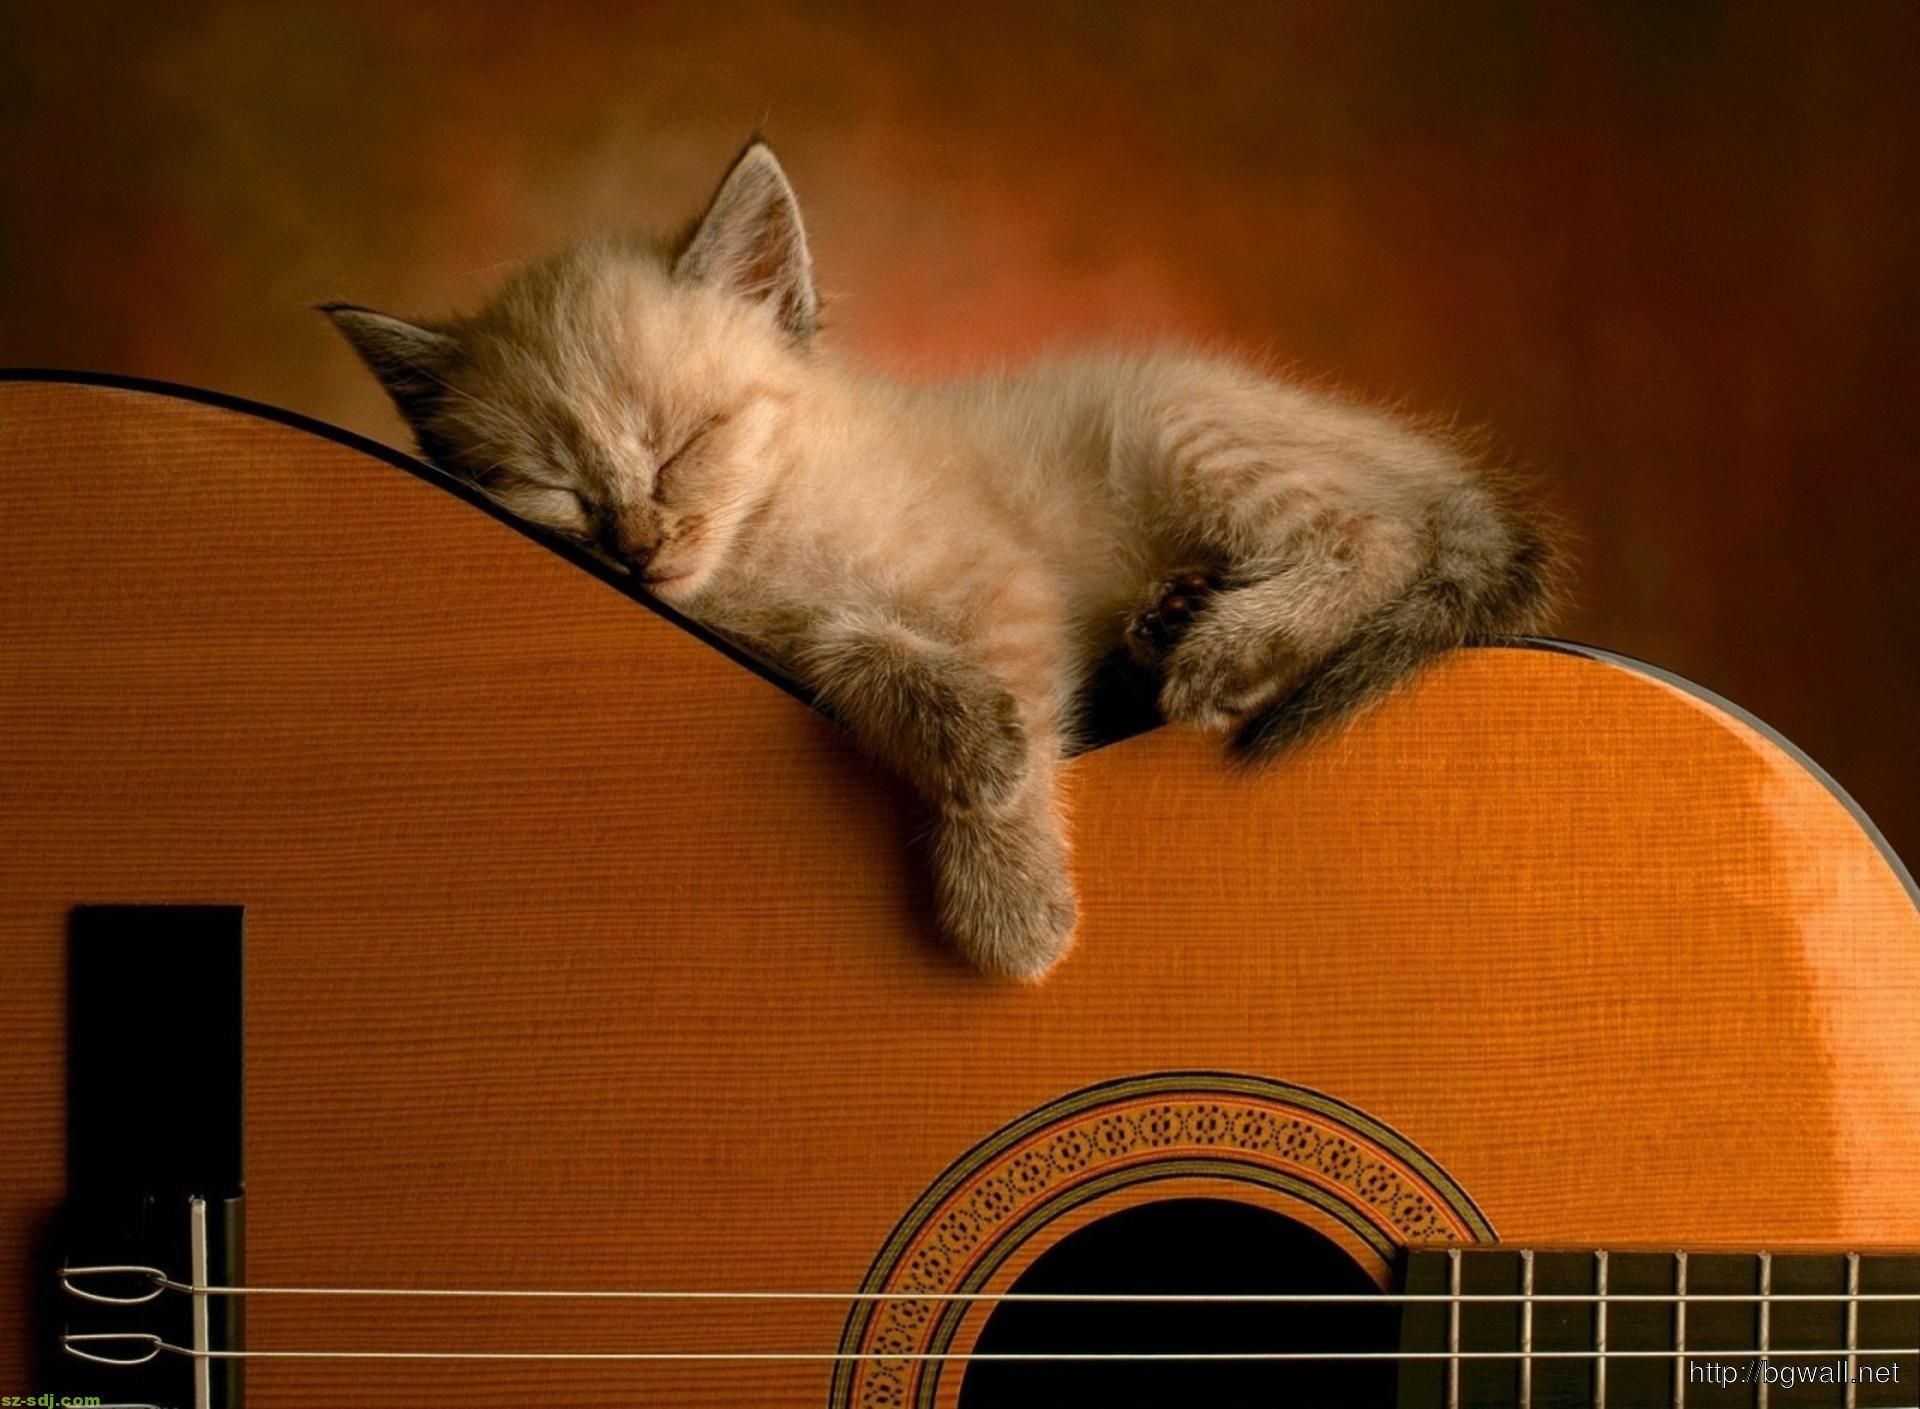 a-little-cat-get-sleep-while-playing-guitar-wallpaper-background